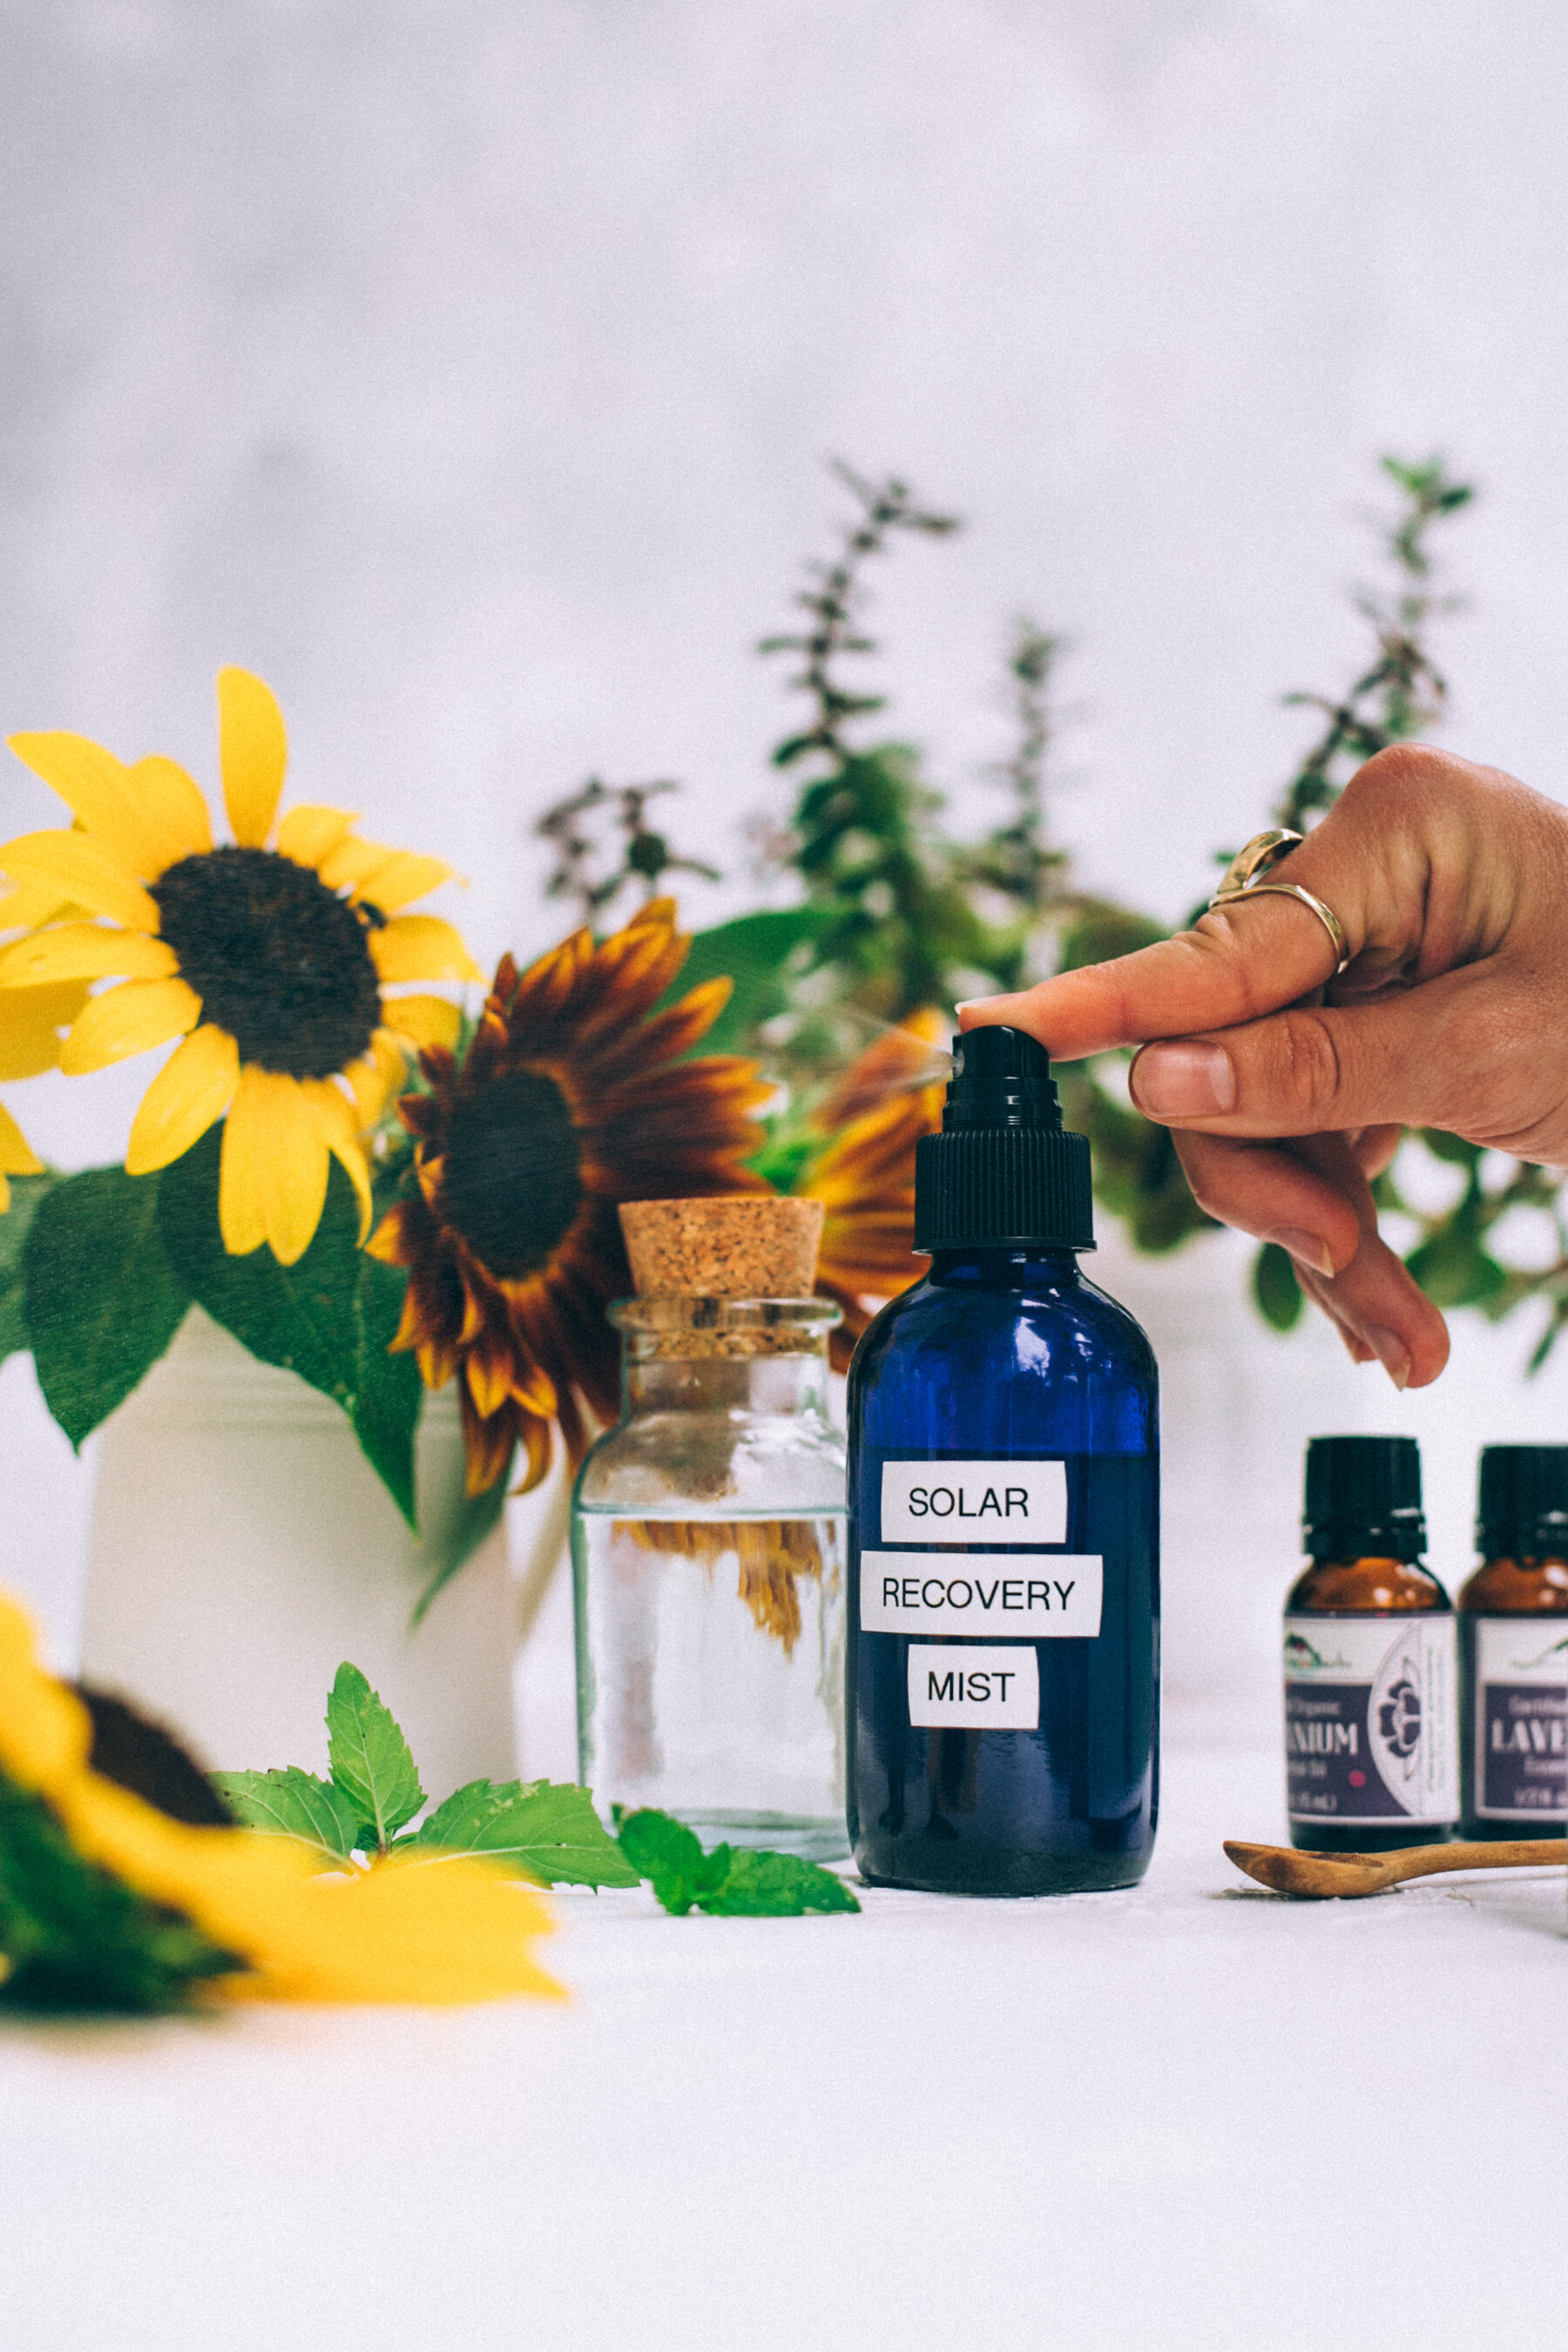 Diy Solar Recovery Mist Aka After Sun Skin Soothing Spray With Essential Oils Will Frolic For Food